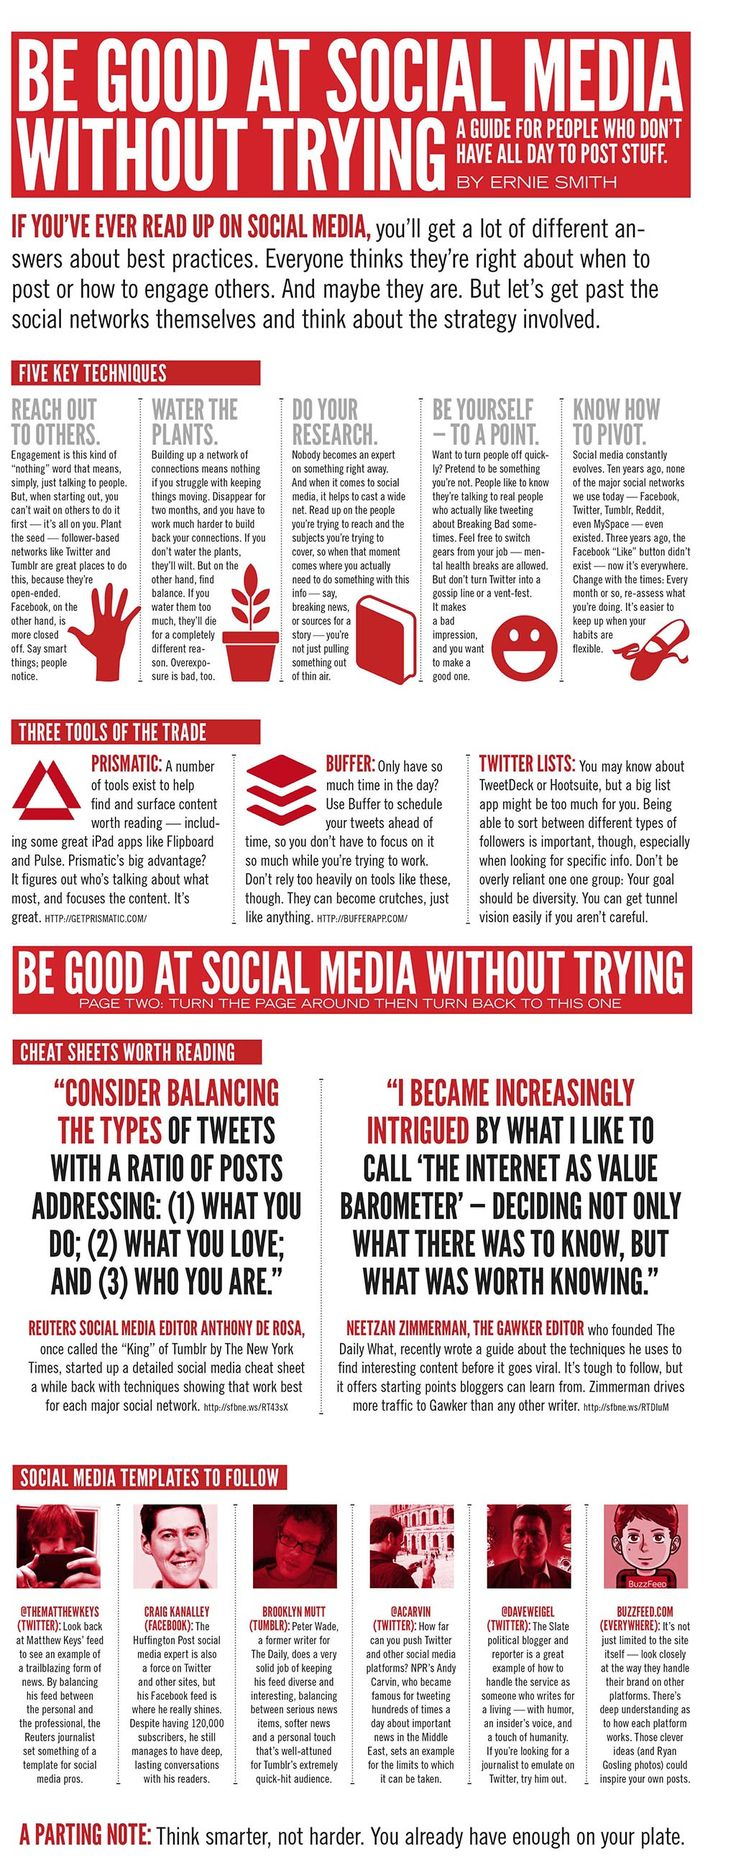 A busy person's guide to social media. Remember though that social media does take time, so don't only really on this infographic (you need time to create or find content and you need to spend time on each platform)